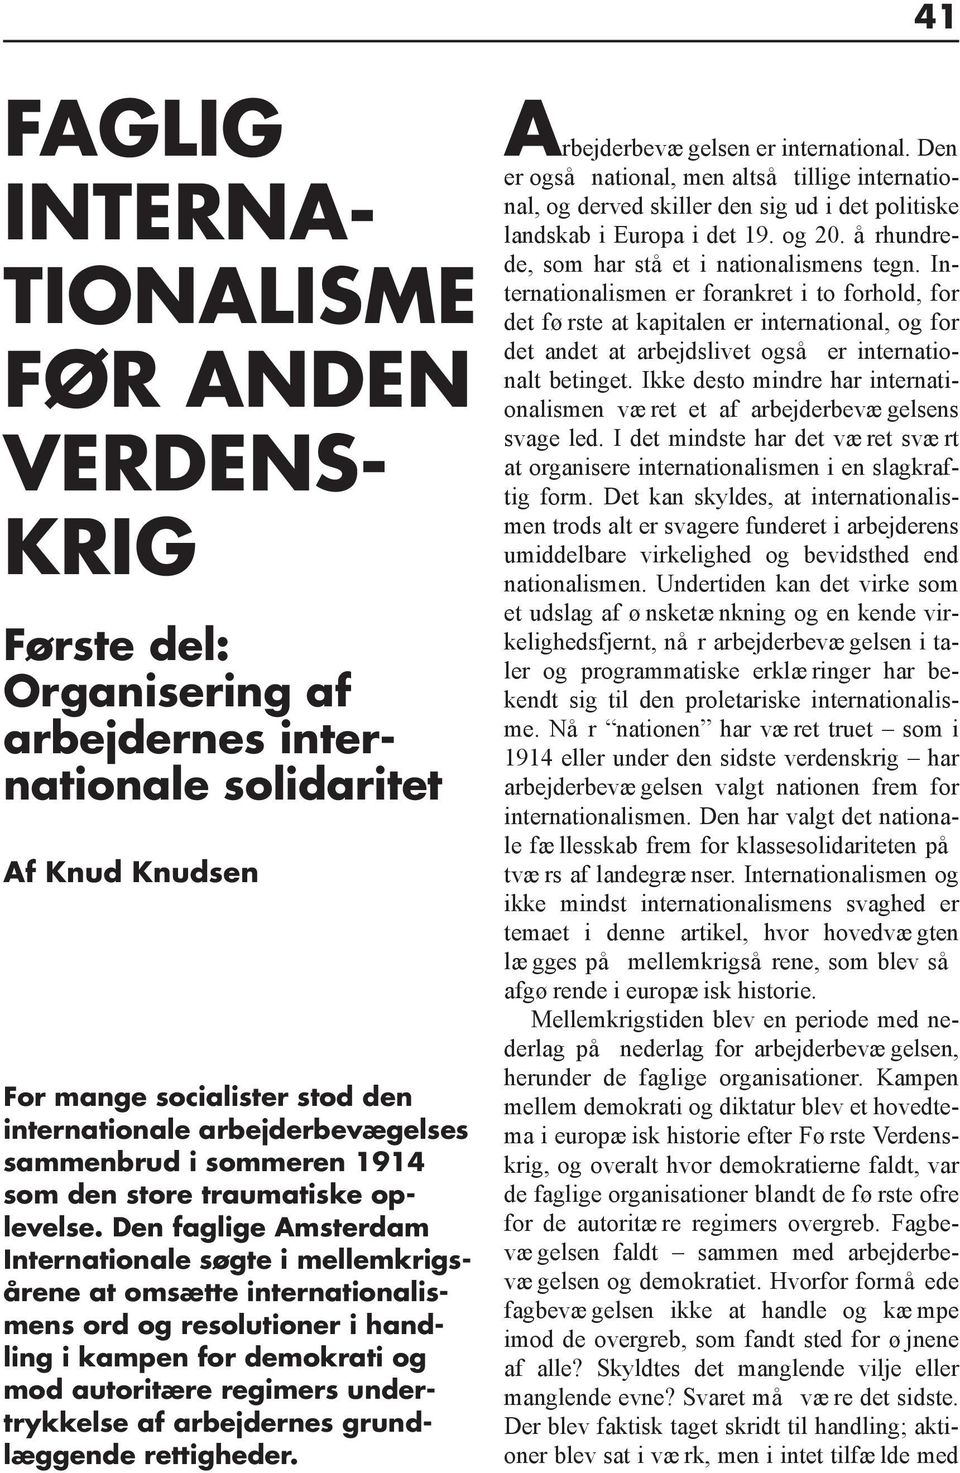 Den faglige Amsterdam Internationale søgte i mellemkrigsårene at omsætte internationalismens ord og resolutioner i handling i kampen for demokrati og mod autoritære regimers undertrykkelse af